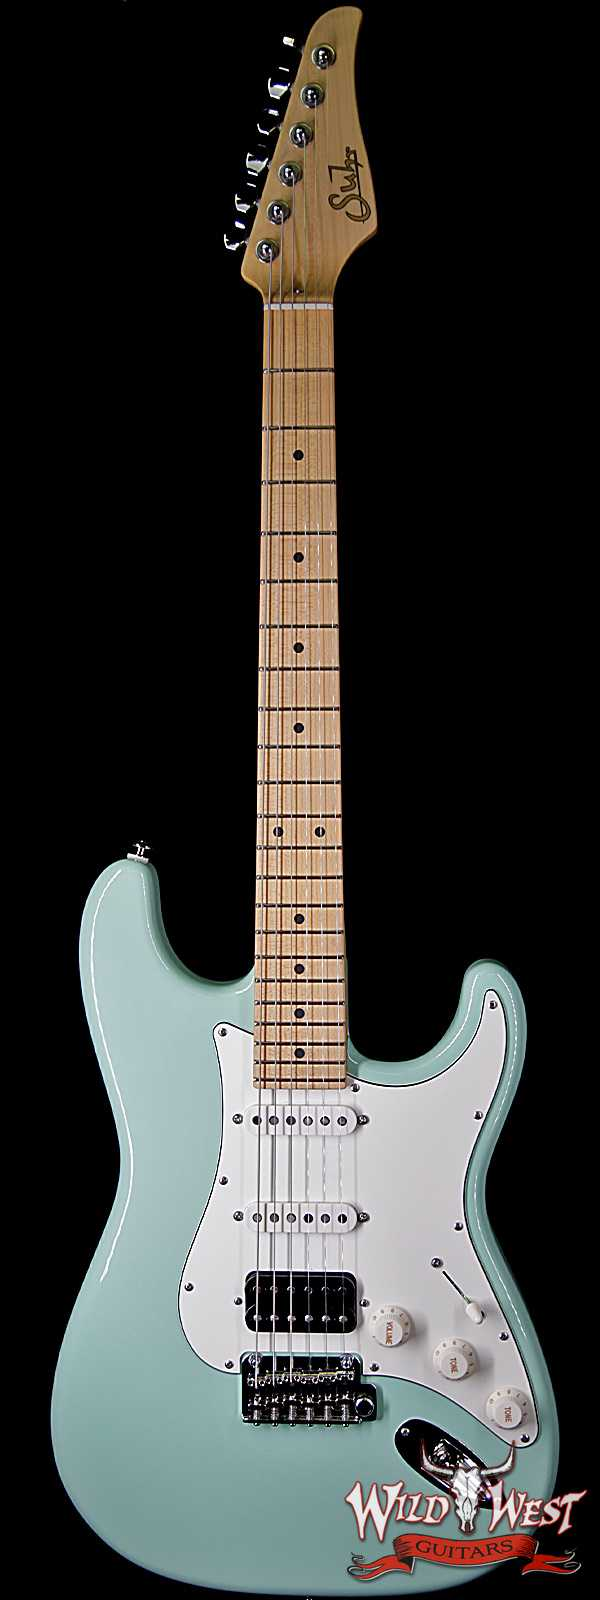 Suhr Classic S (Classic Pro) HSS Quartersawn Maple Neck & Fingerboard Surf Green